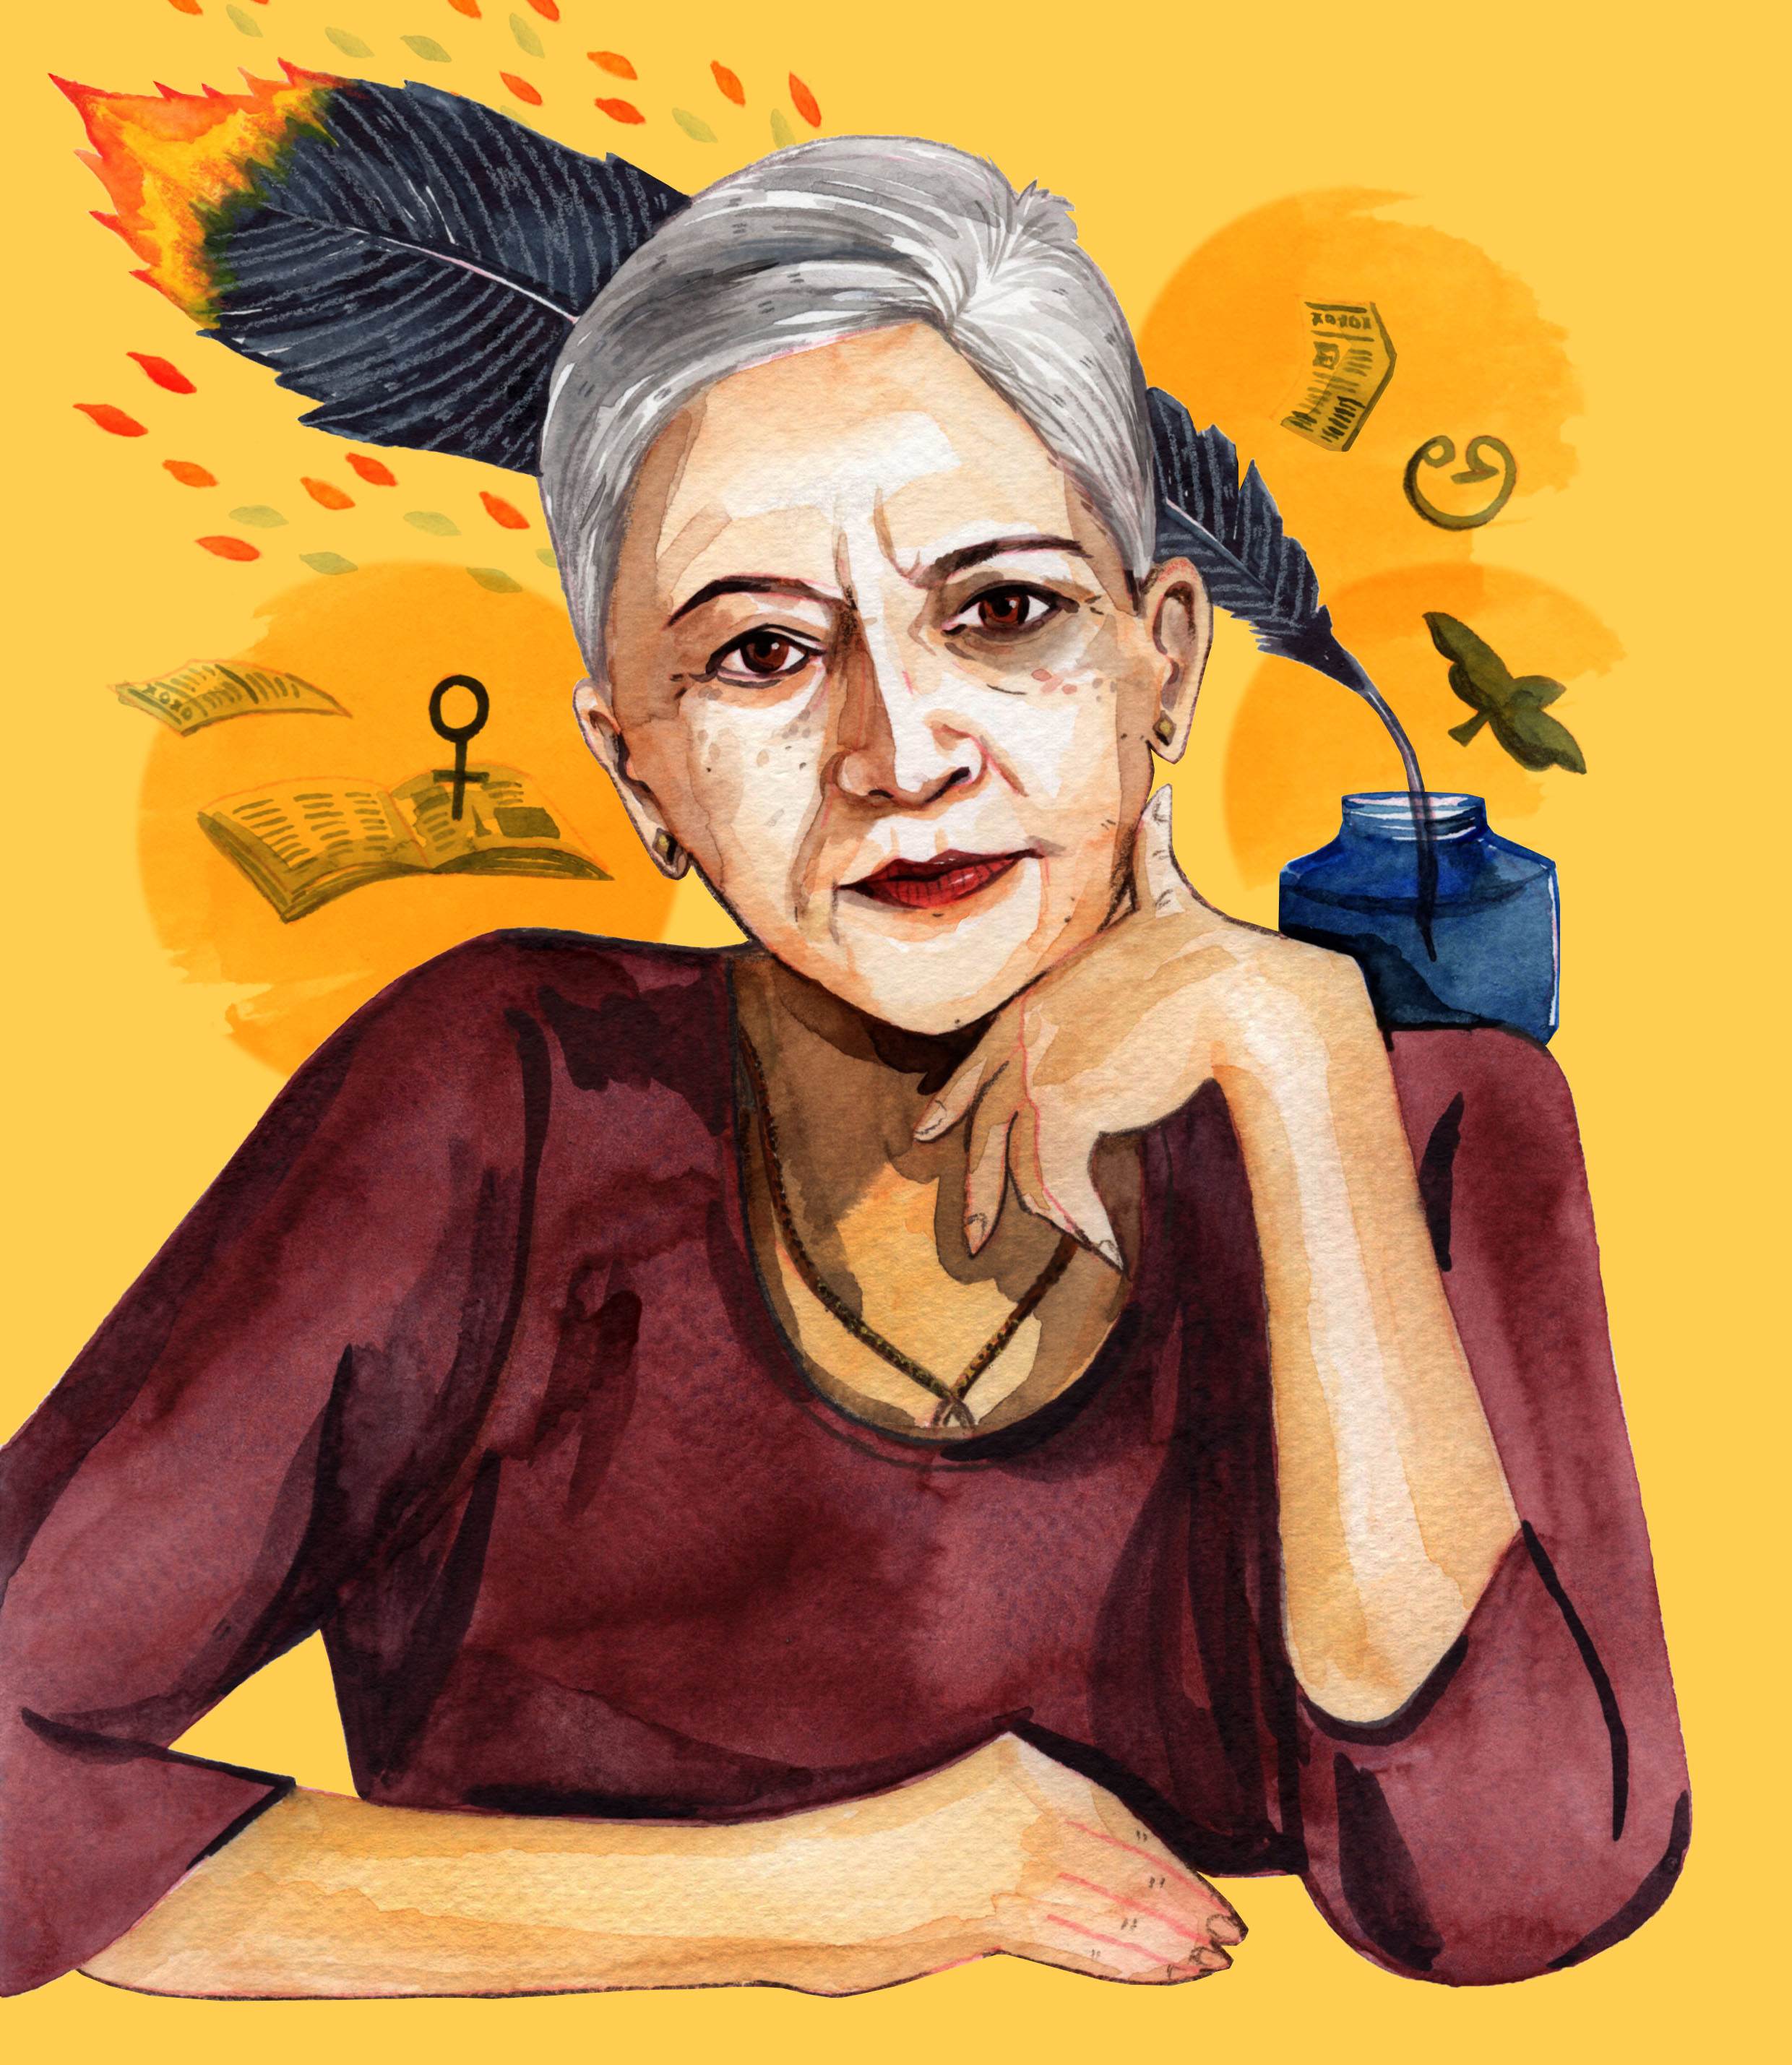 https://shrutiprabhu.com/wp-content/uploads/2018/12/shrutiprabhu_gaurilankesh_featuredimage.jpg